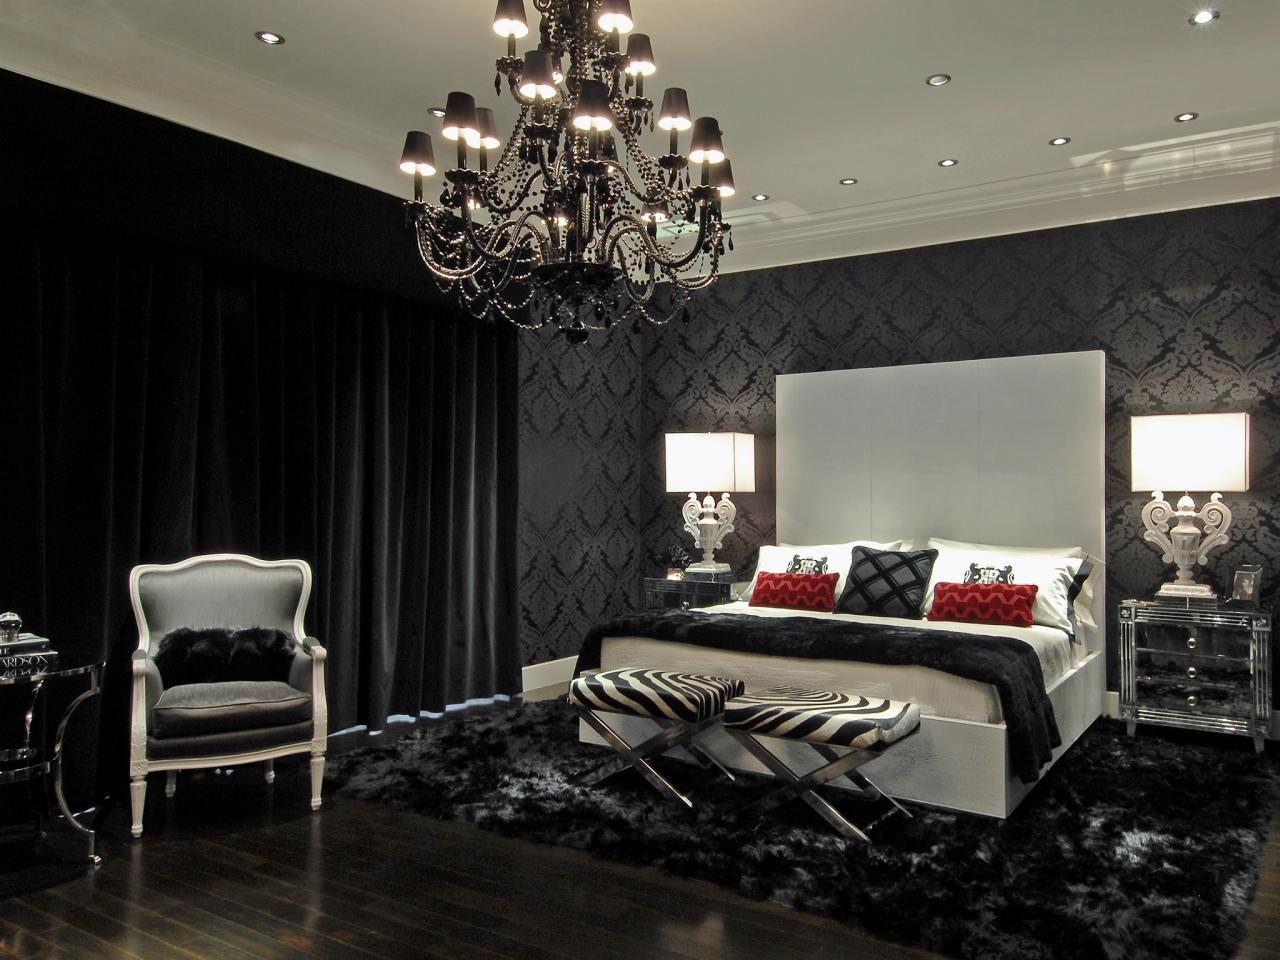 15 black chandelier bedroom chandelier ideas stunning new black chandeliers bedroom lowes courtagerivegauche with regard to black chandelier bedroom image 15 arubaitofo Gallery